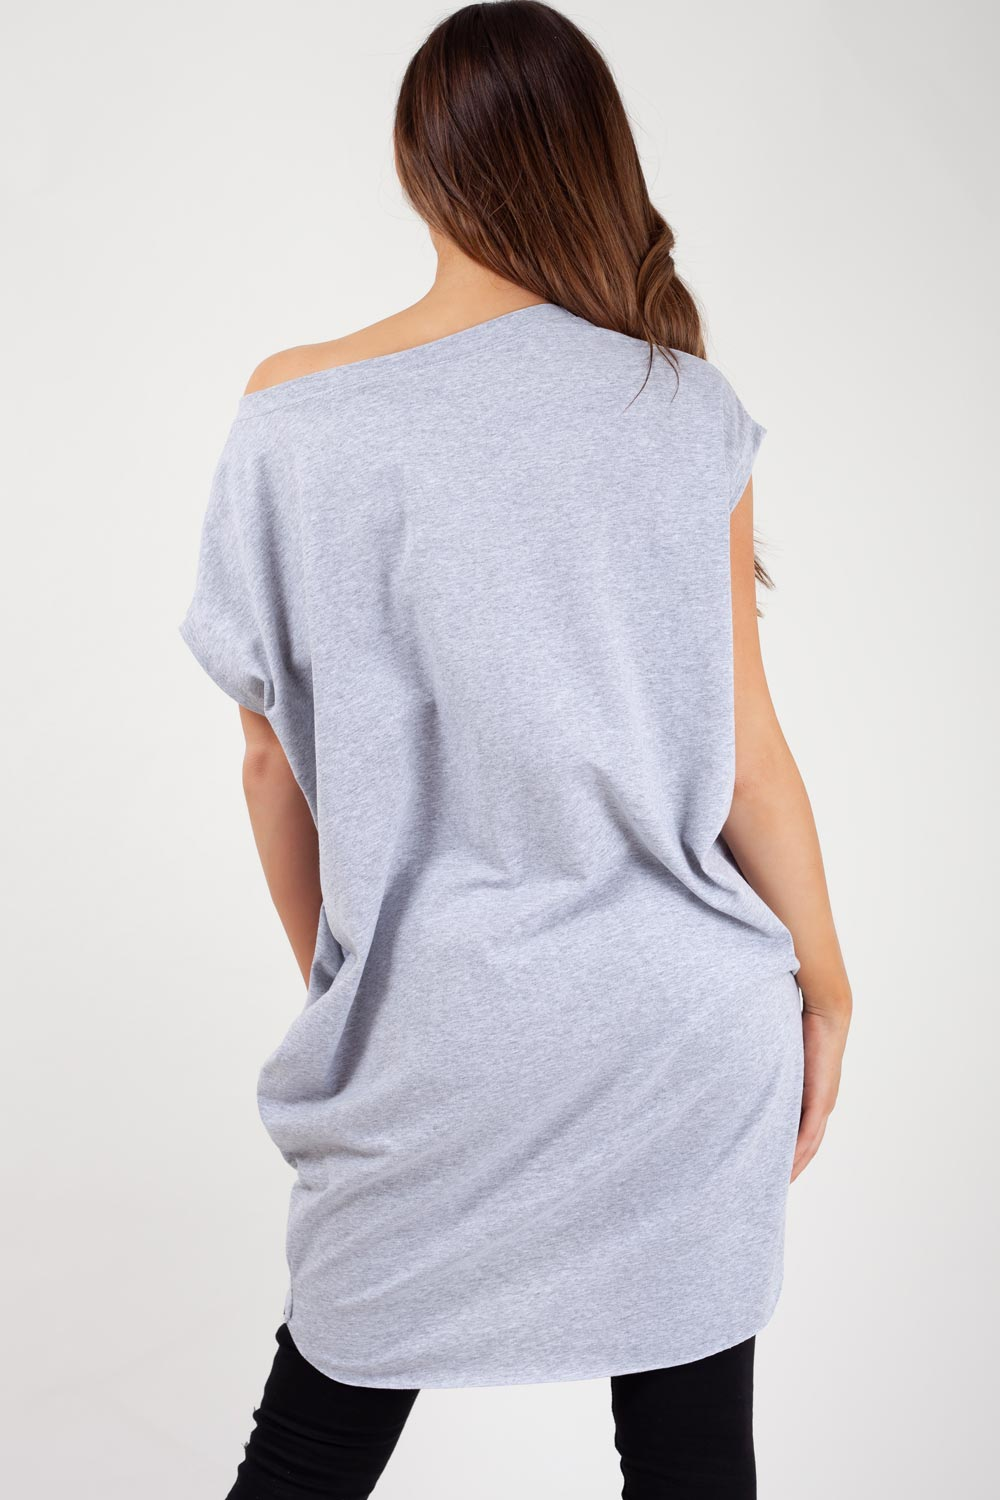 grey oversized womens t shirt made in italy